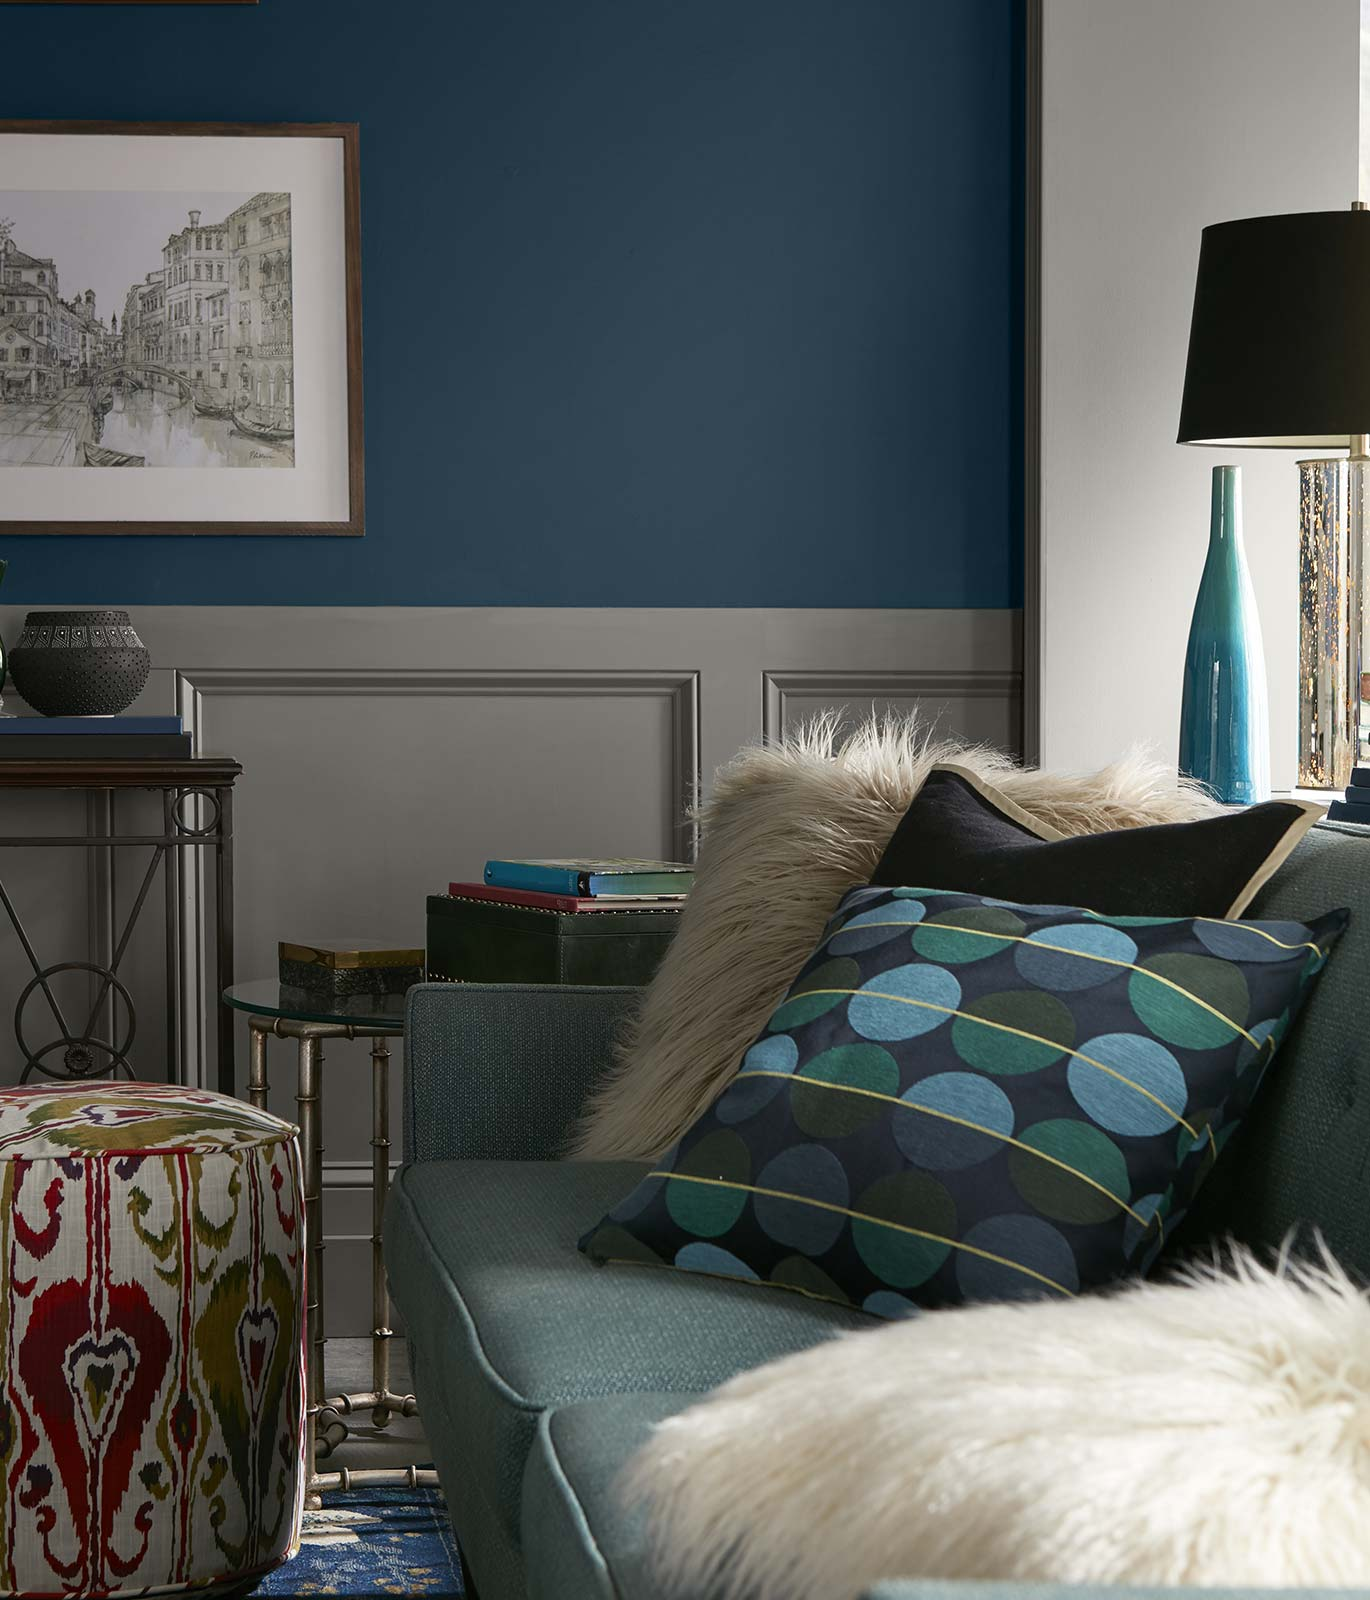 A tight crop of a living room with a light blue couch and darker blue painted walls. The mood is quiet and relaxed.